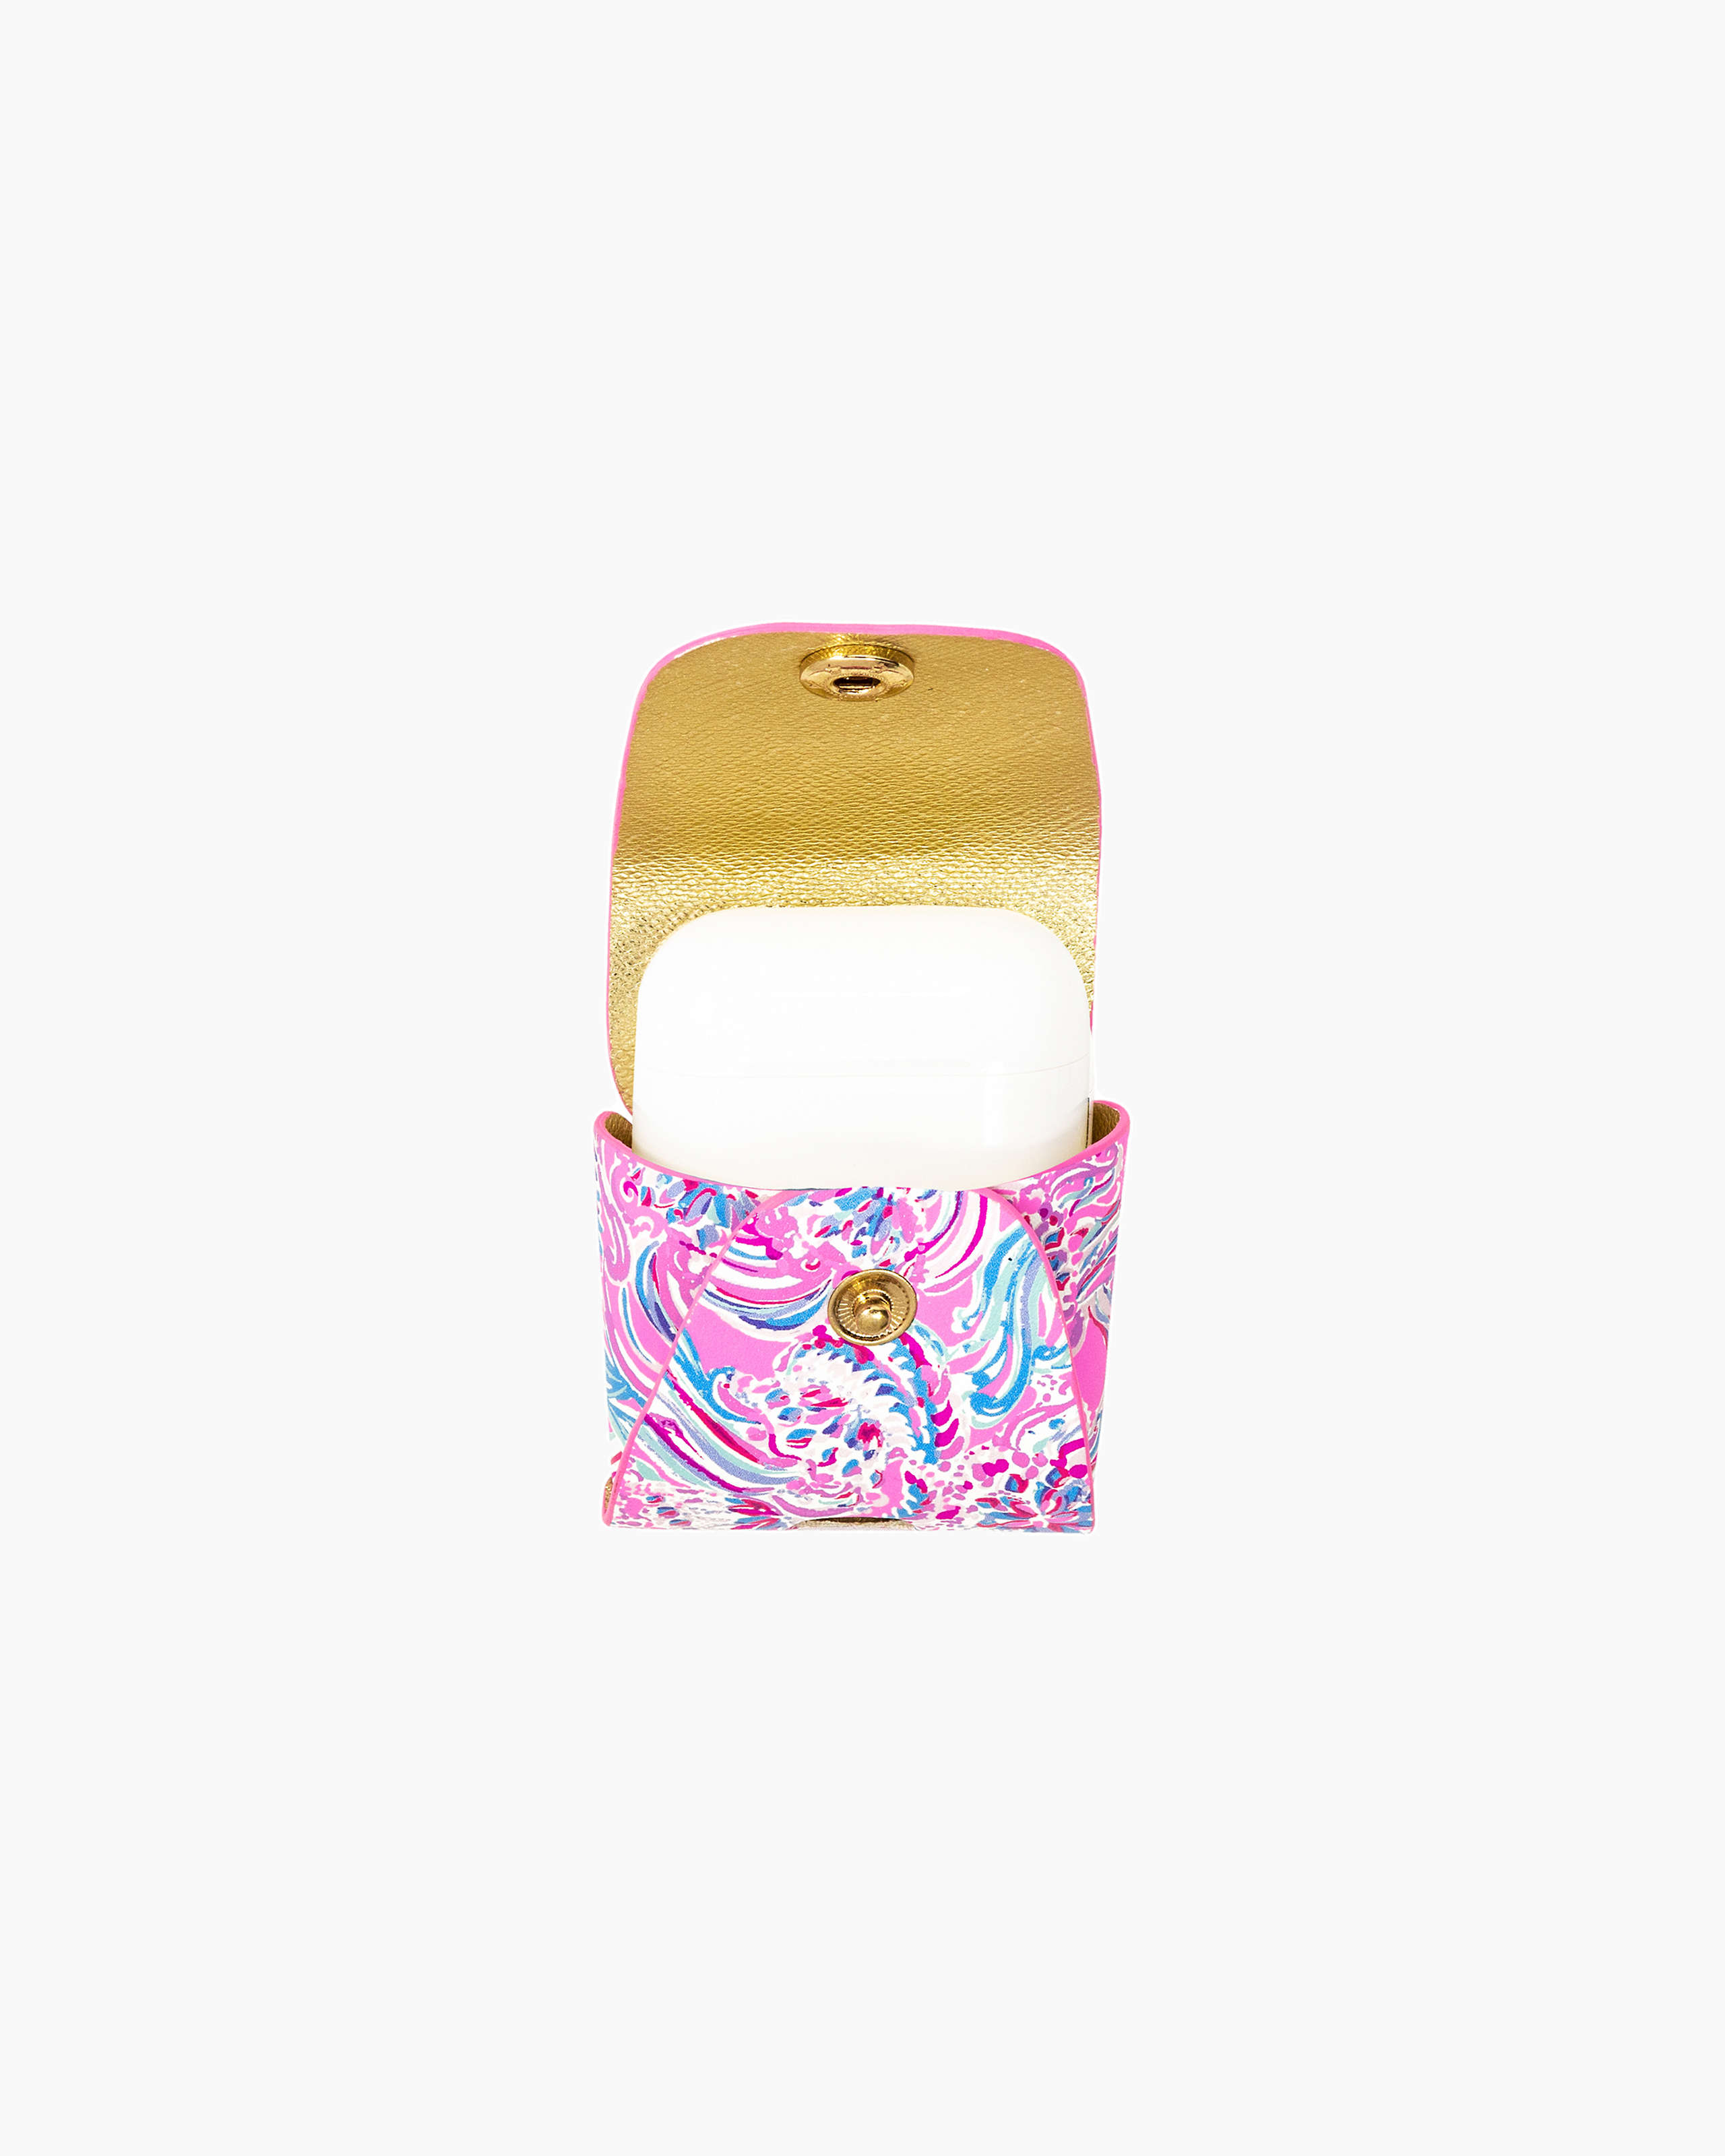 Apple Airpod Case Carrier, Prosecco Pink Dont Be Jelly, large - Lilly Pulitzer Zoomed